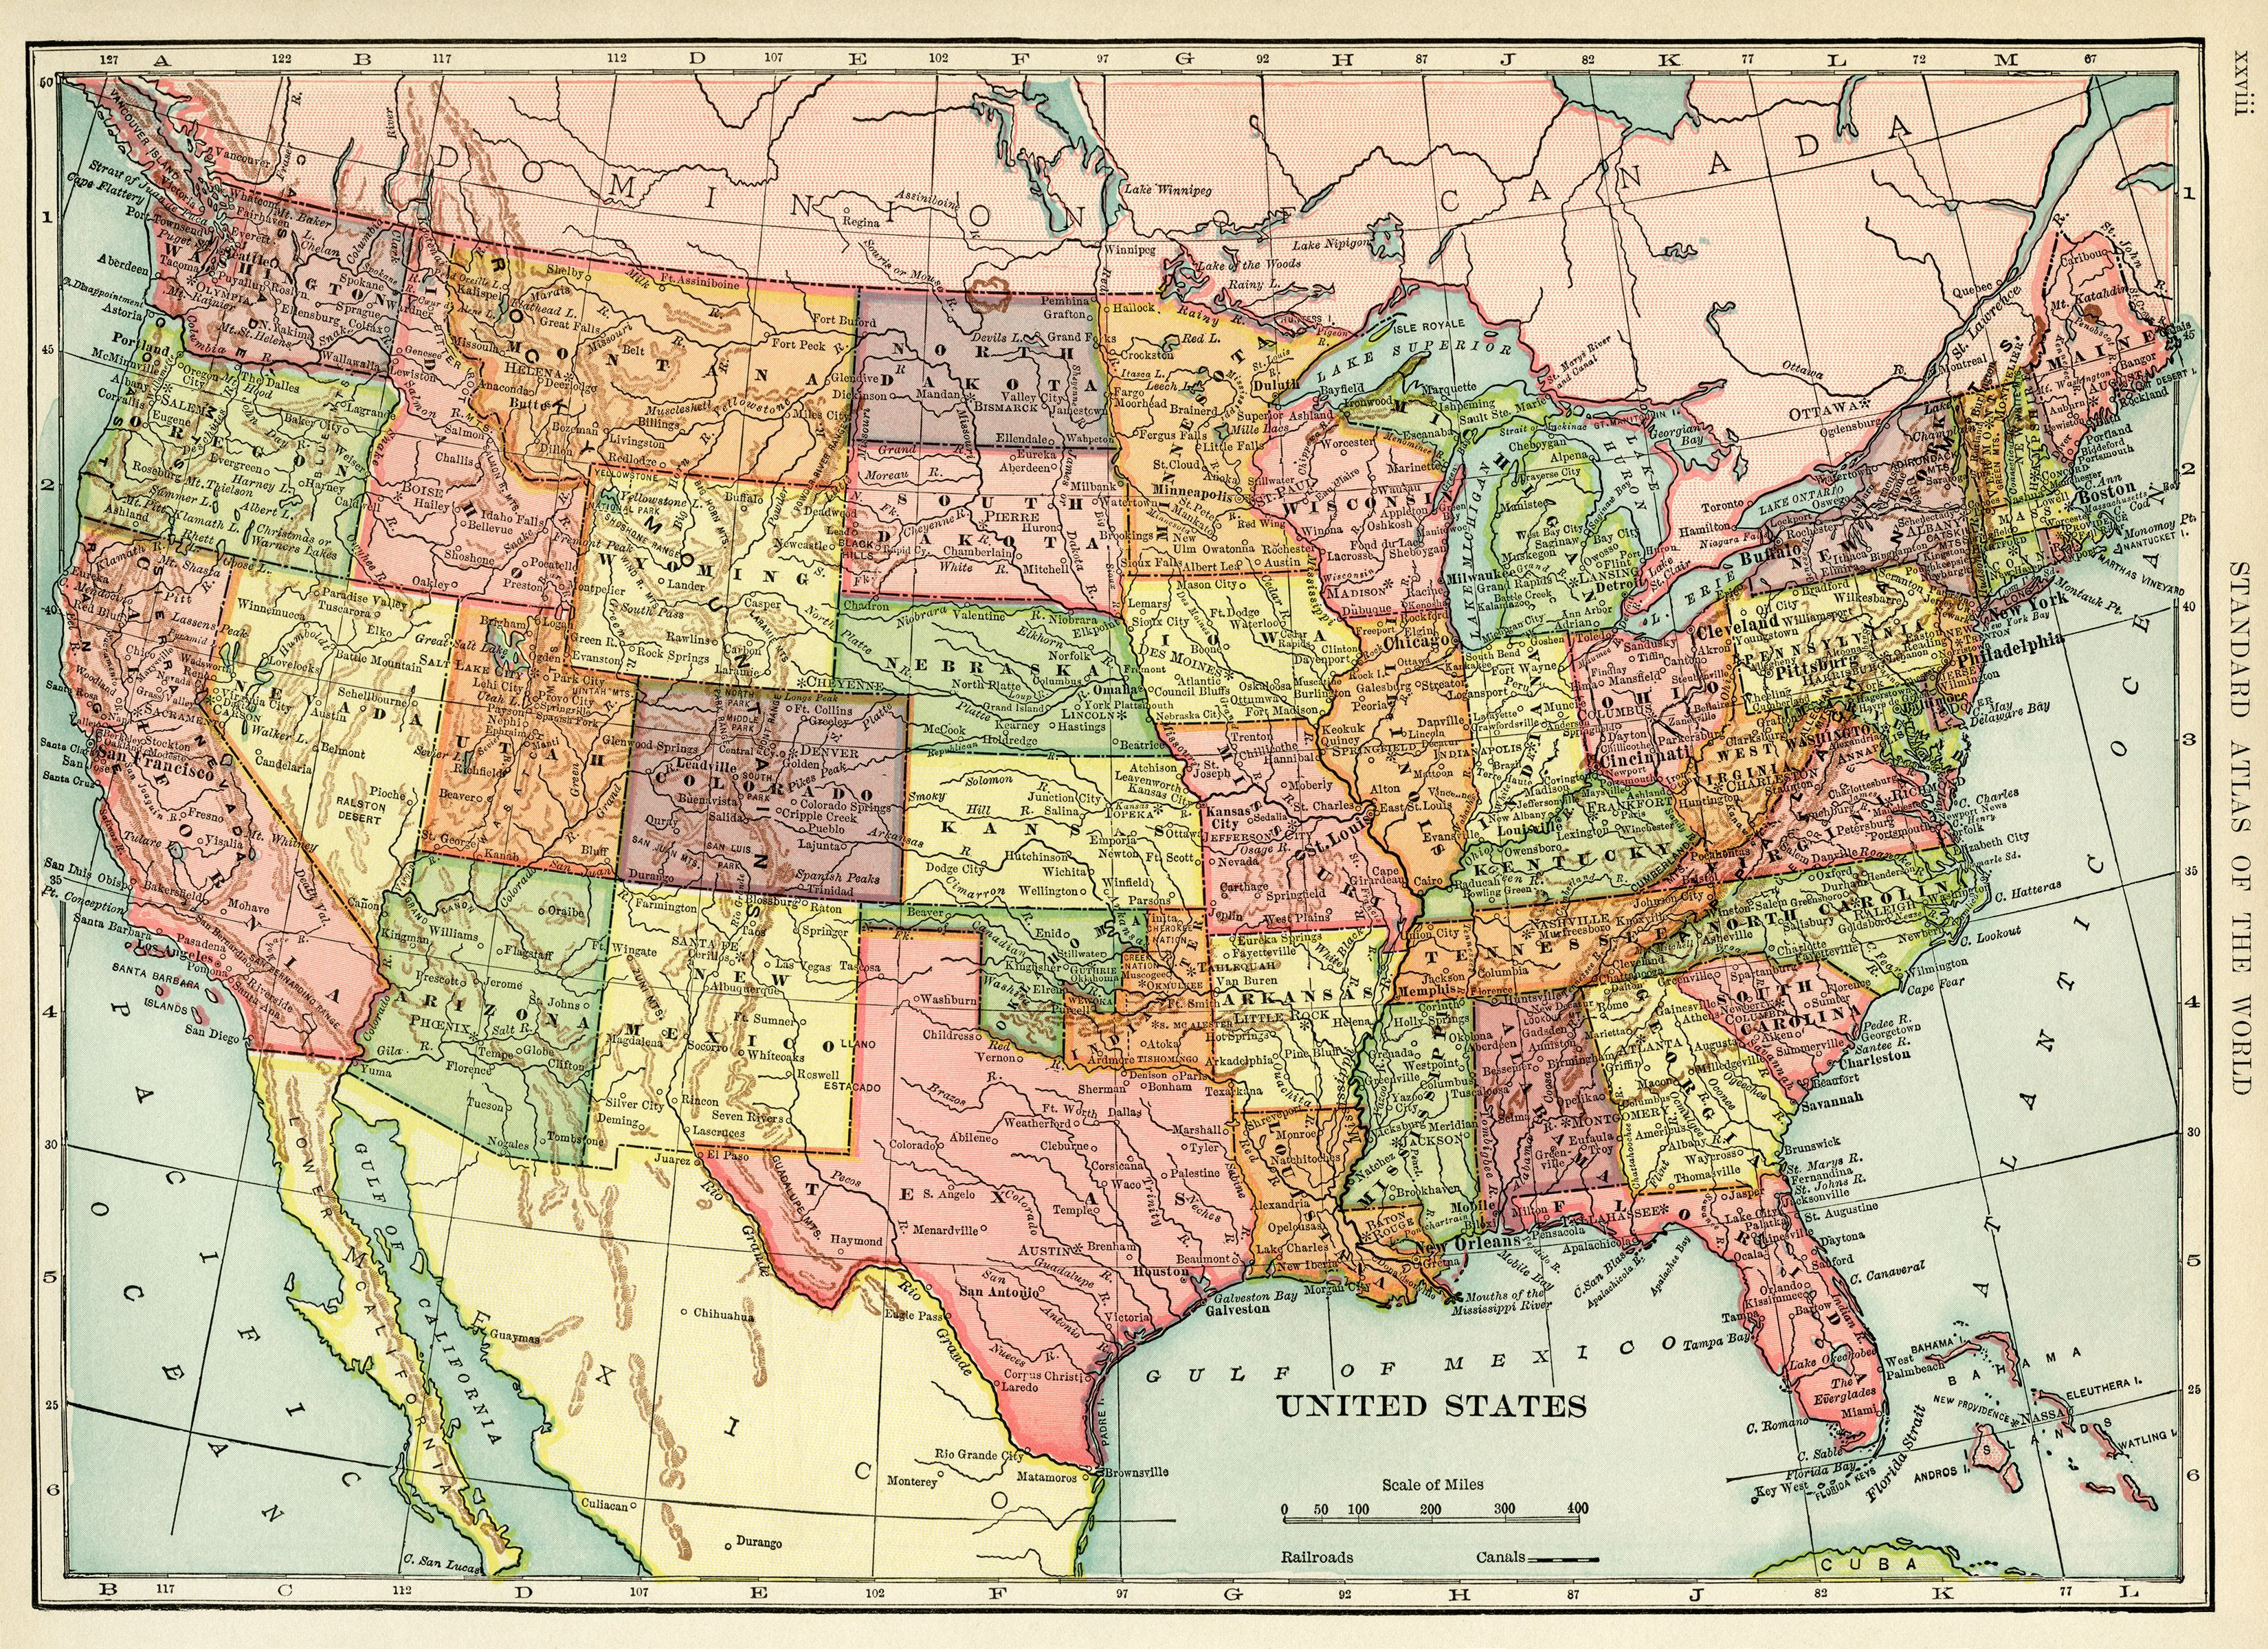 United States Map Vintage Map Download Antique Map History - States map of the united states